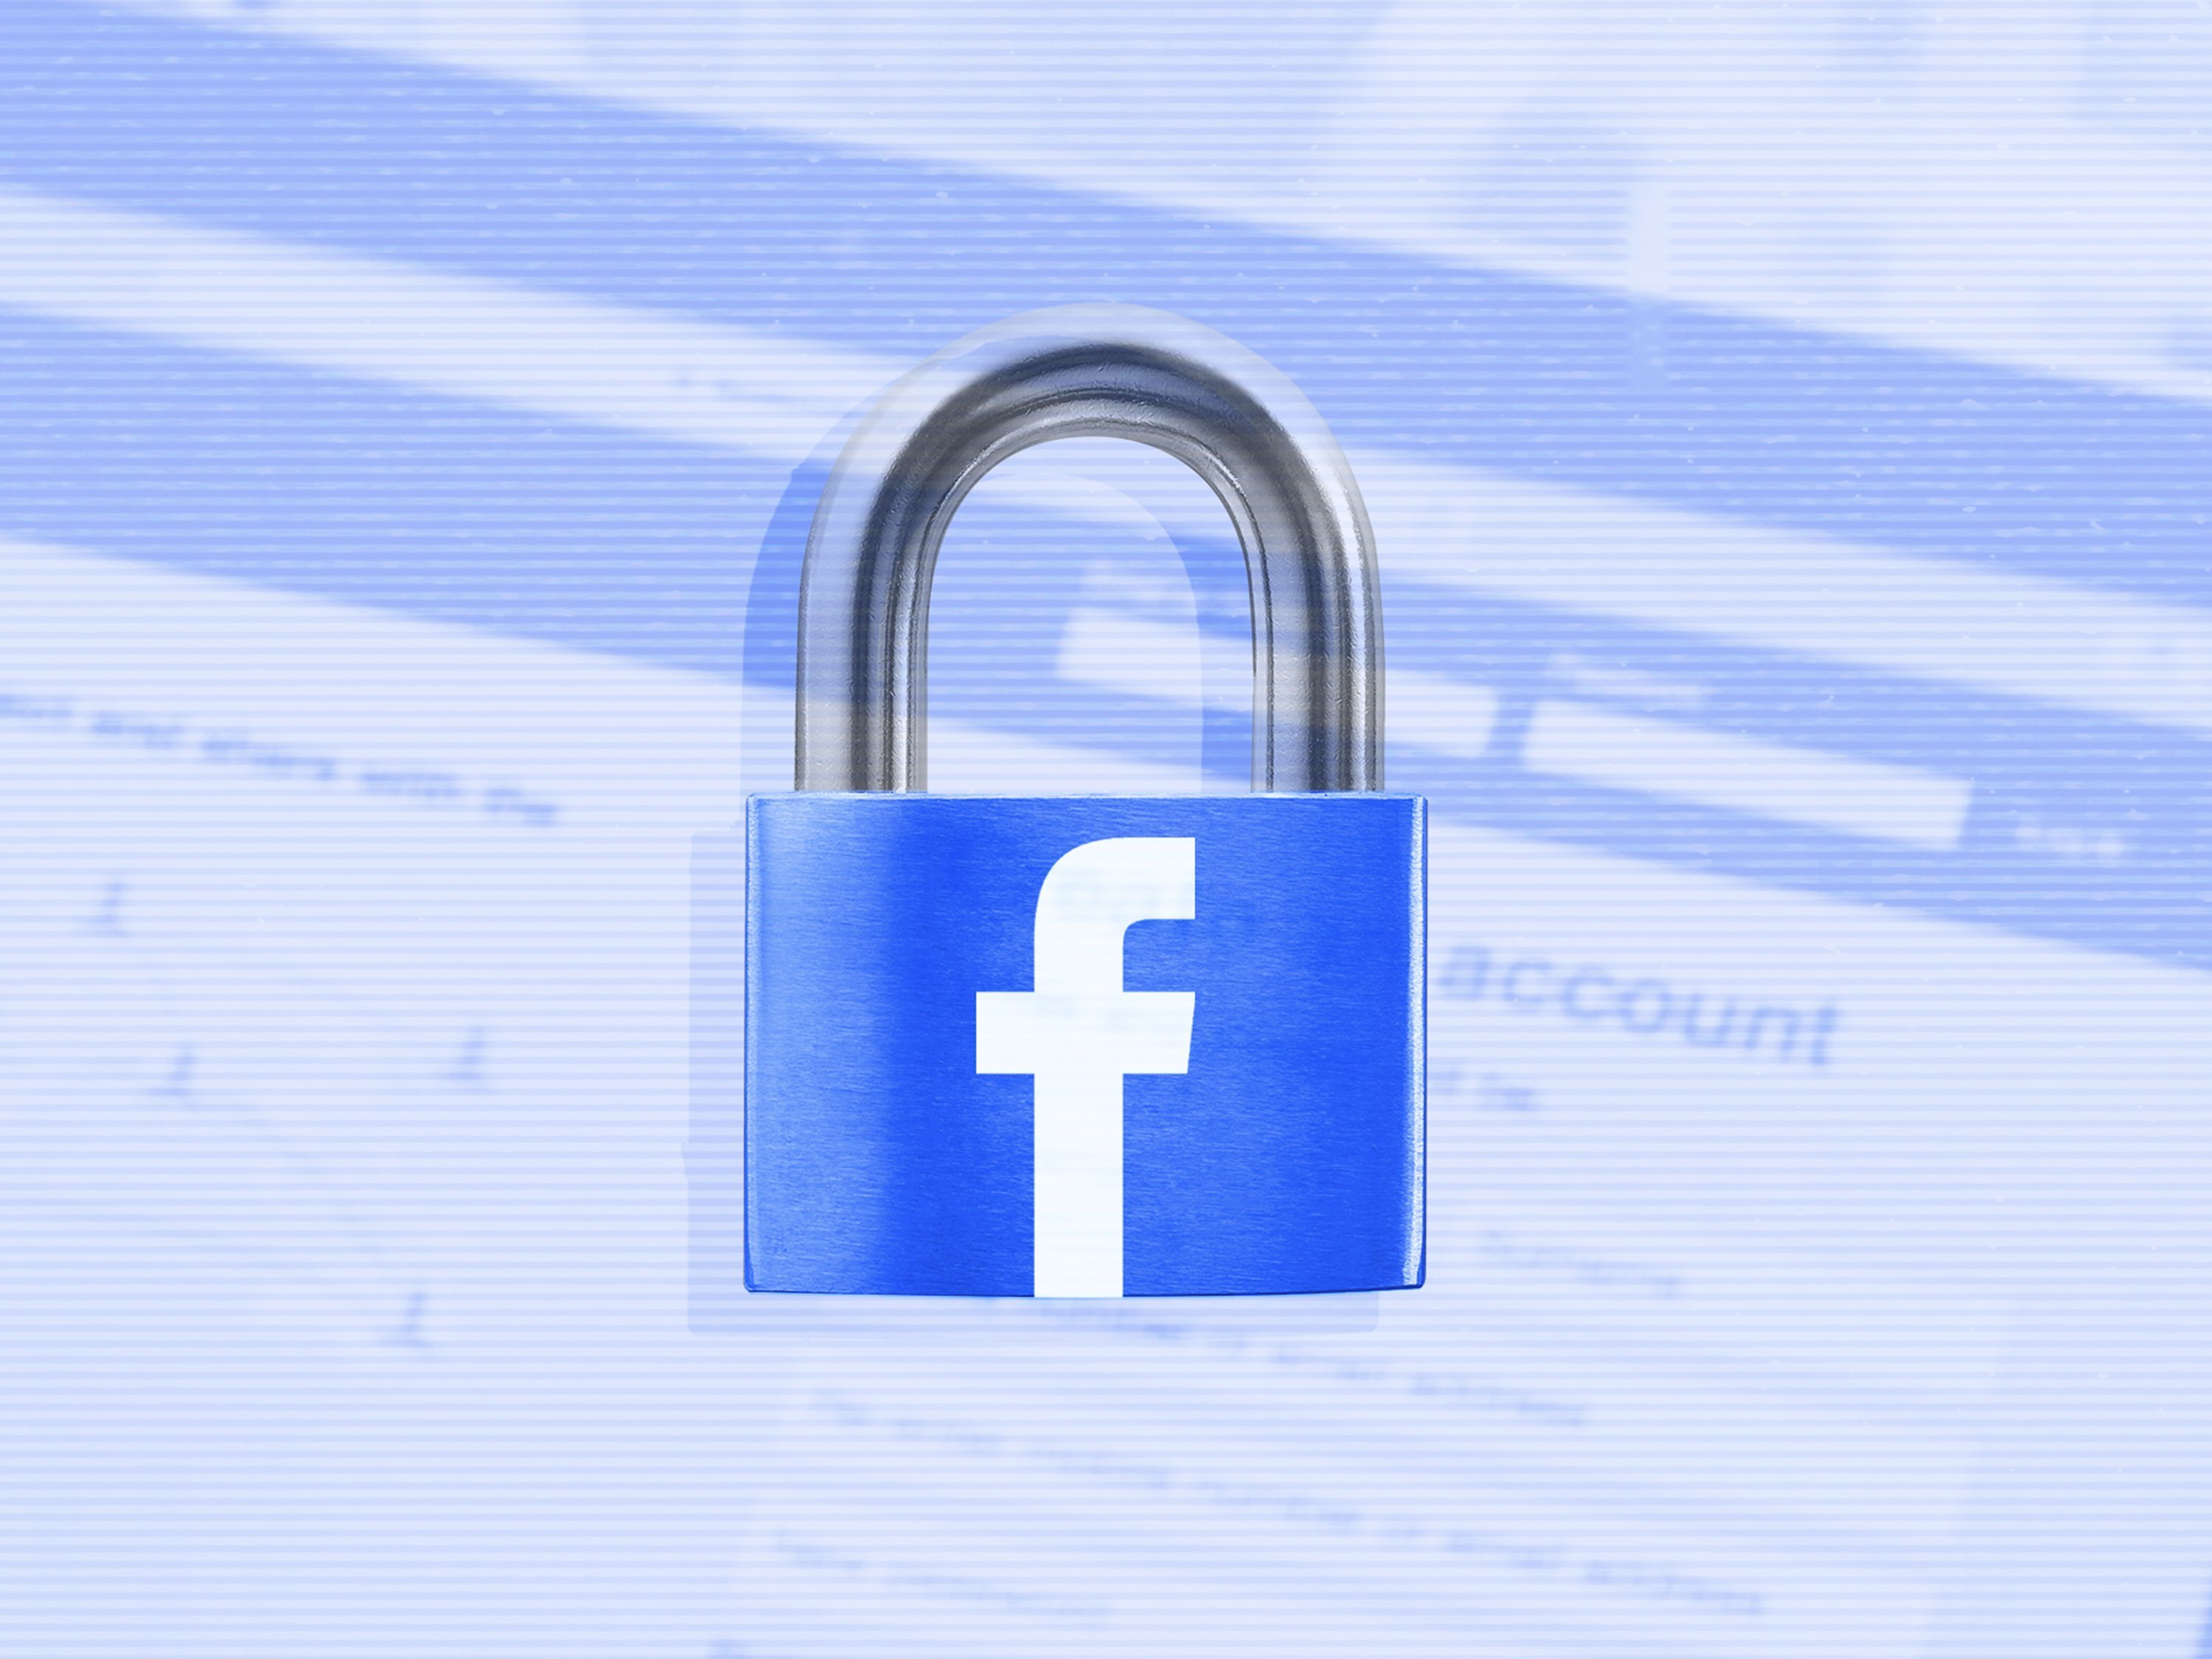 Amid data-privacy crisis, Facebook to delay launch of new products